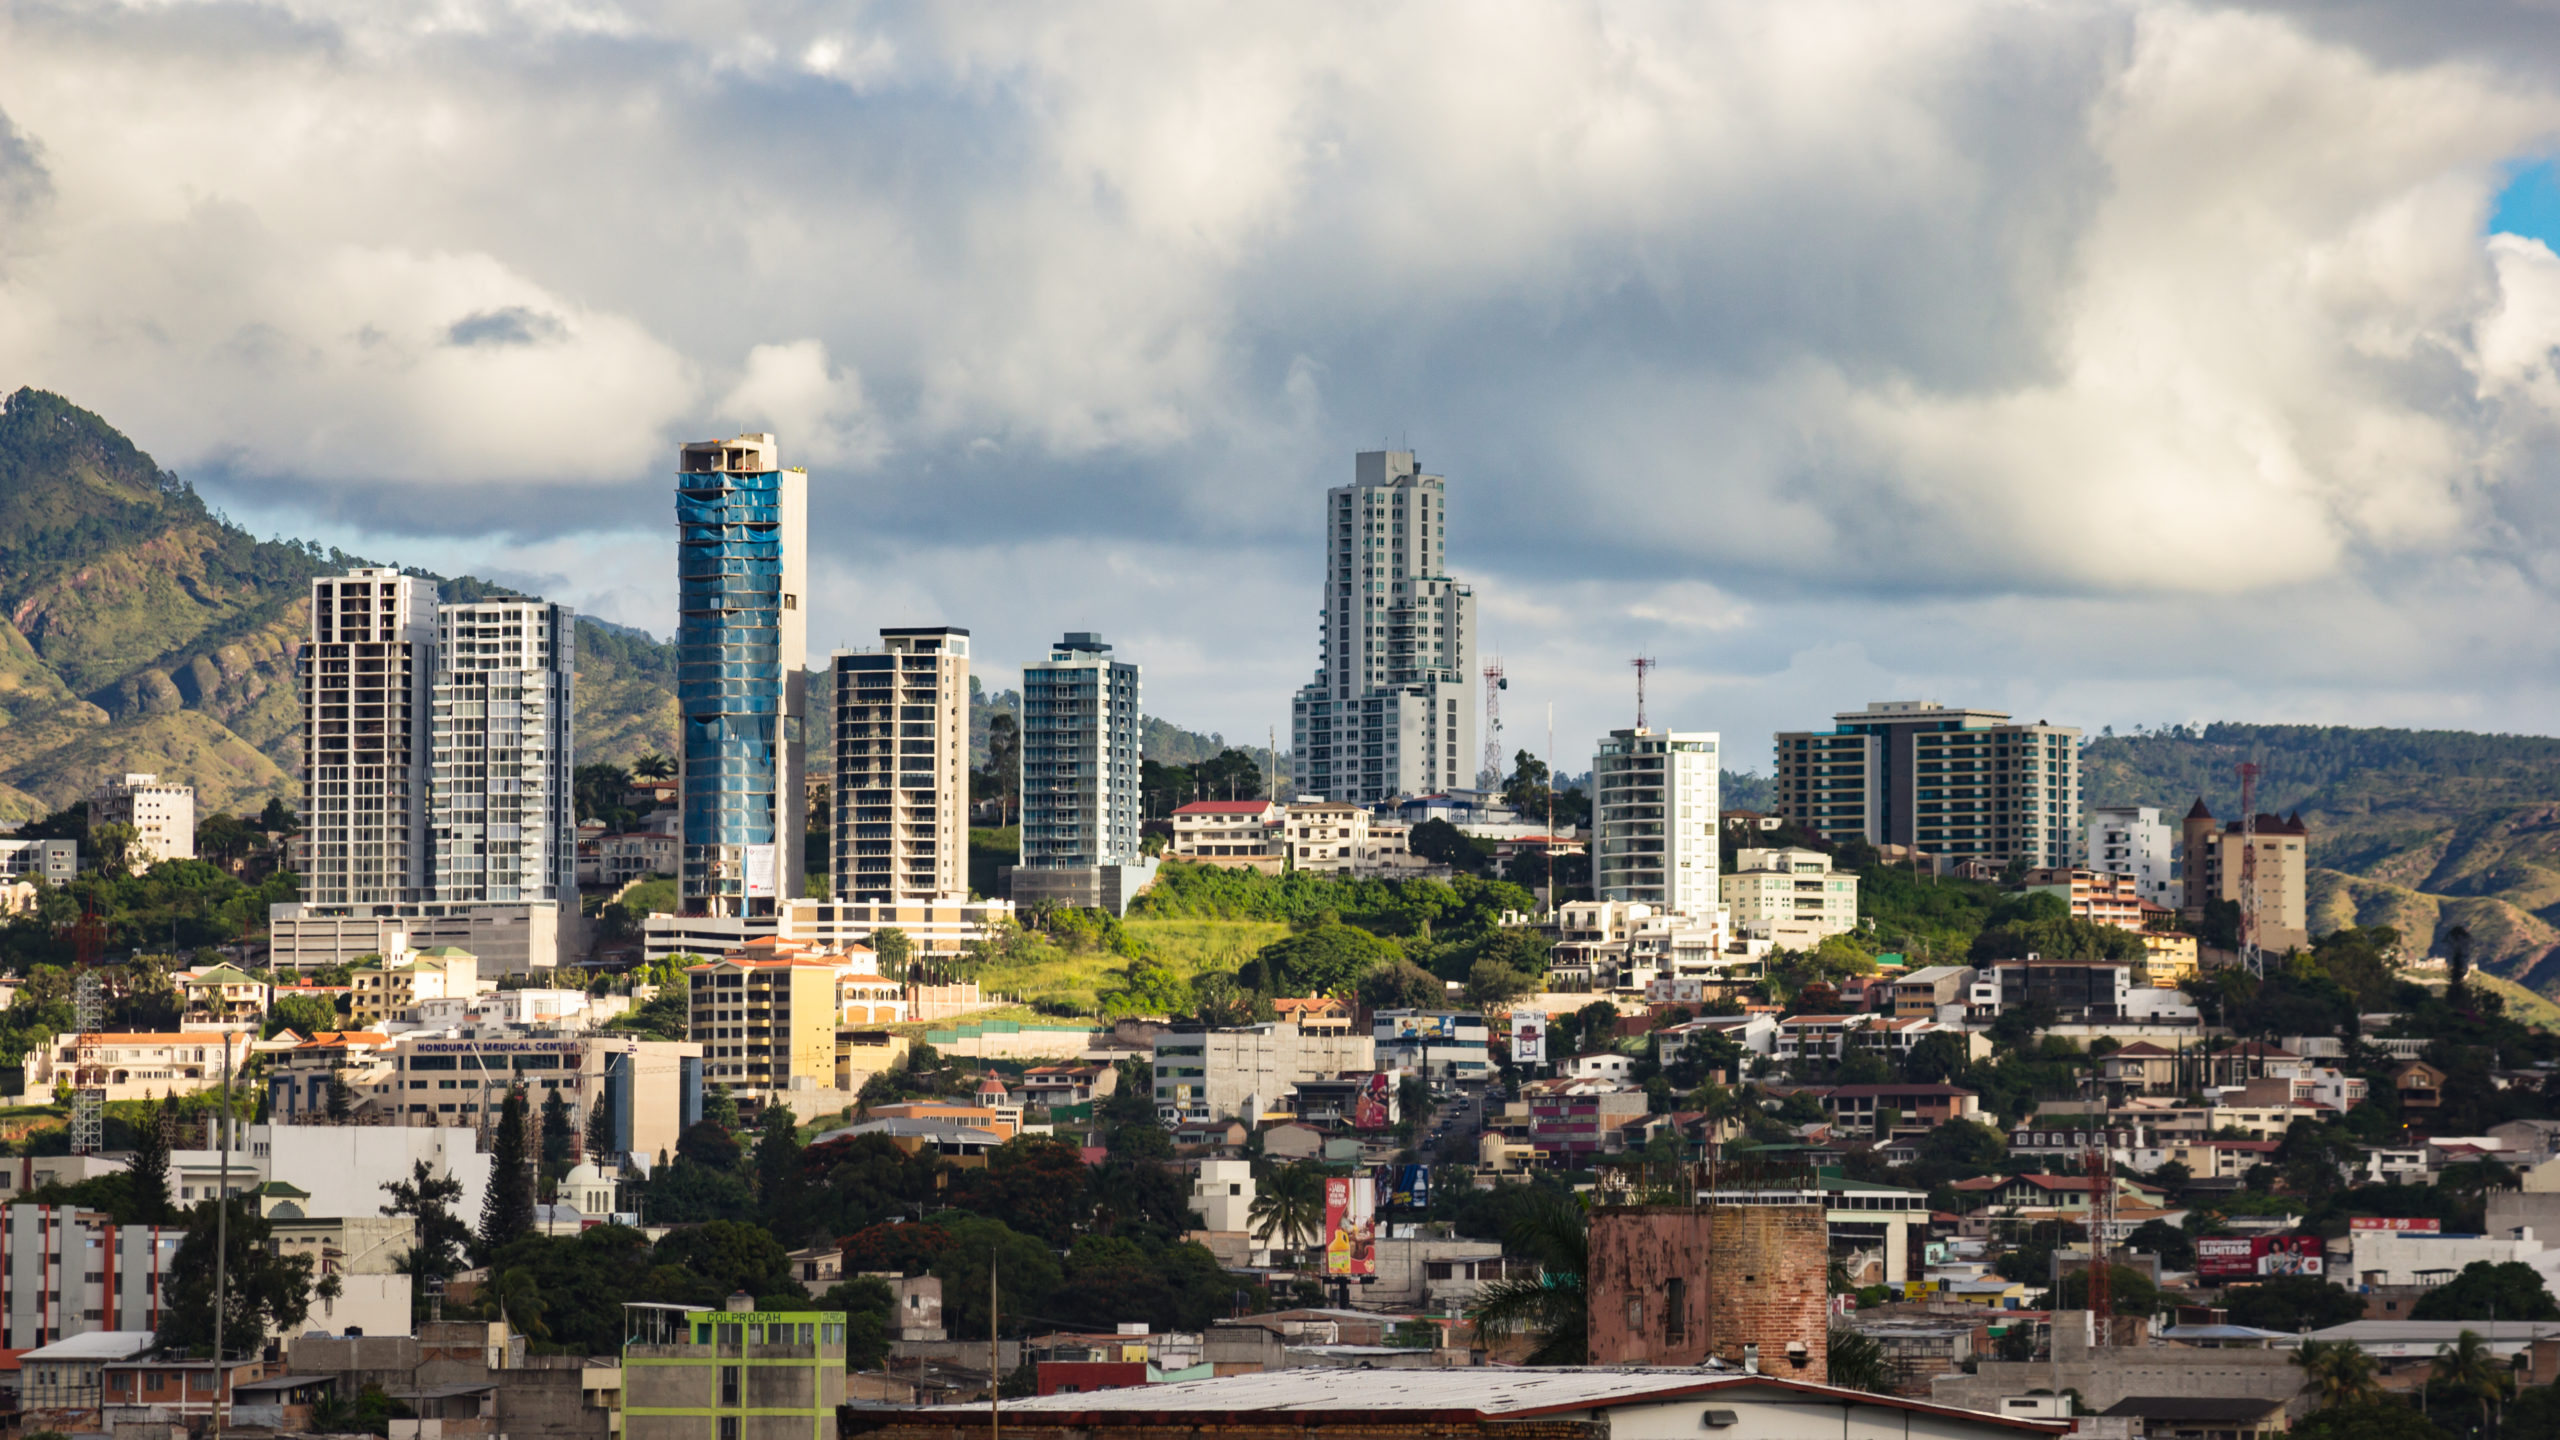 Tegra is merging two manufacturing sites in Honduras..